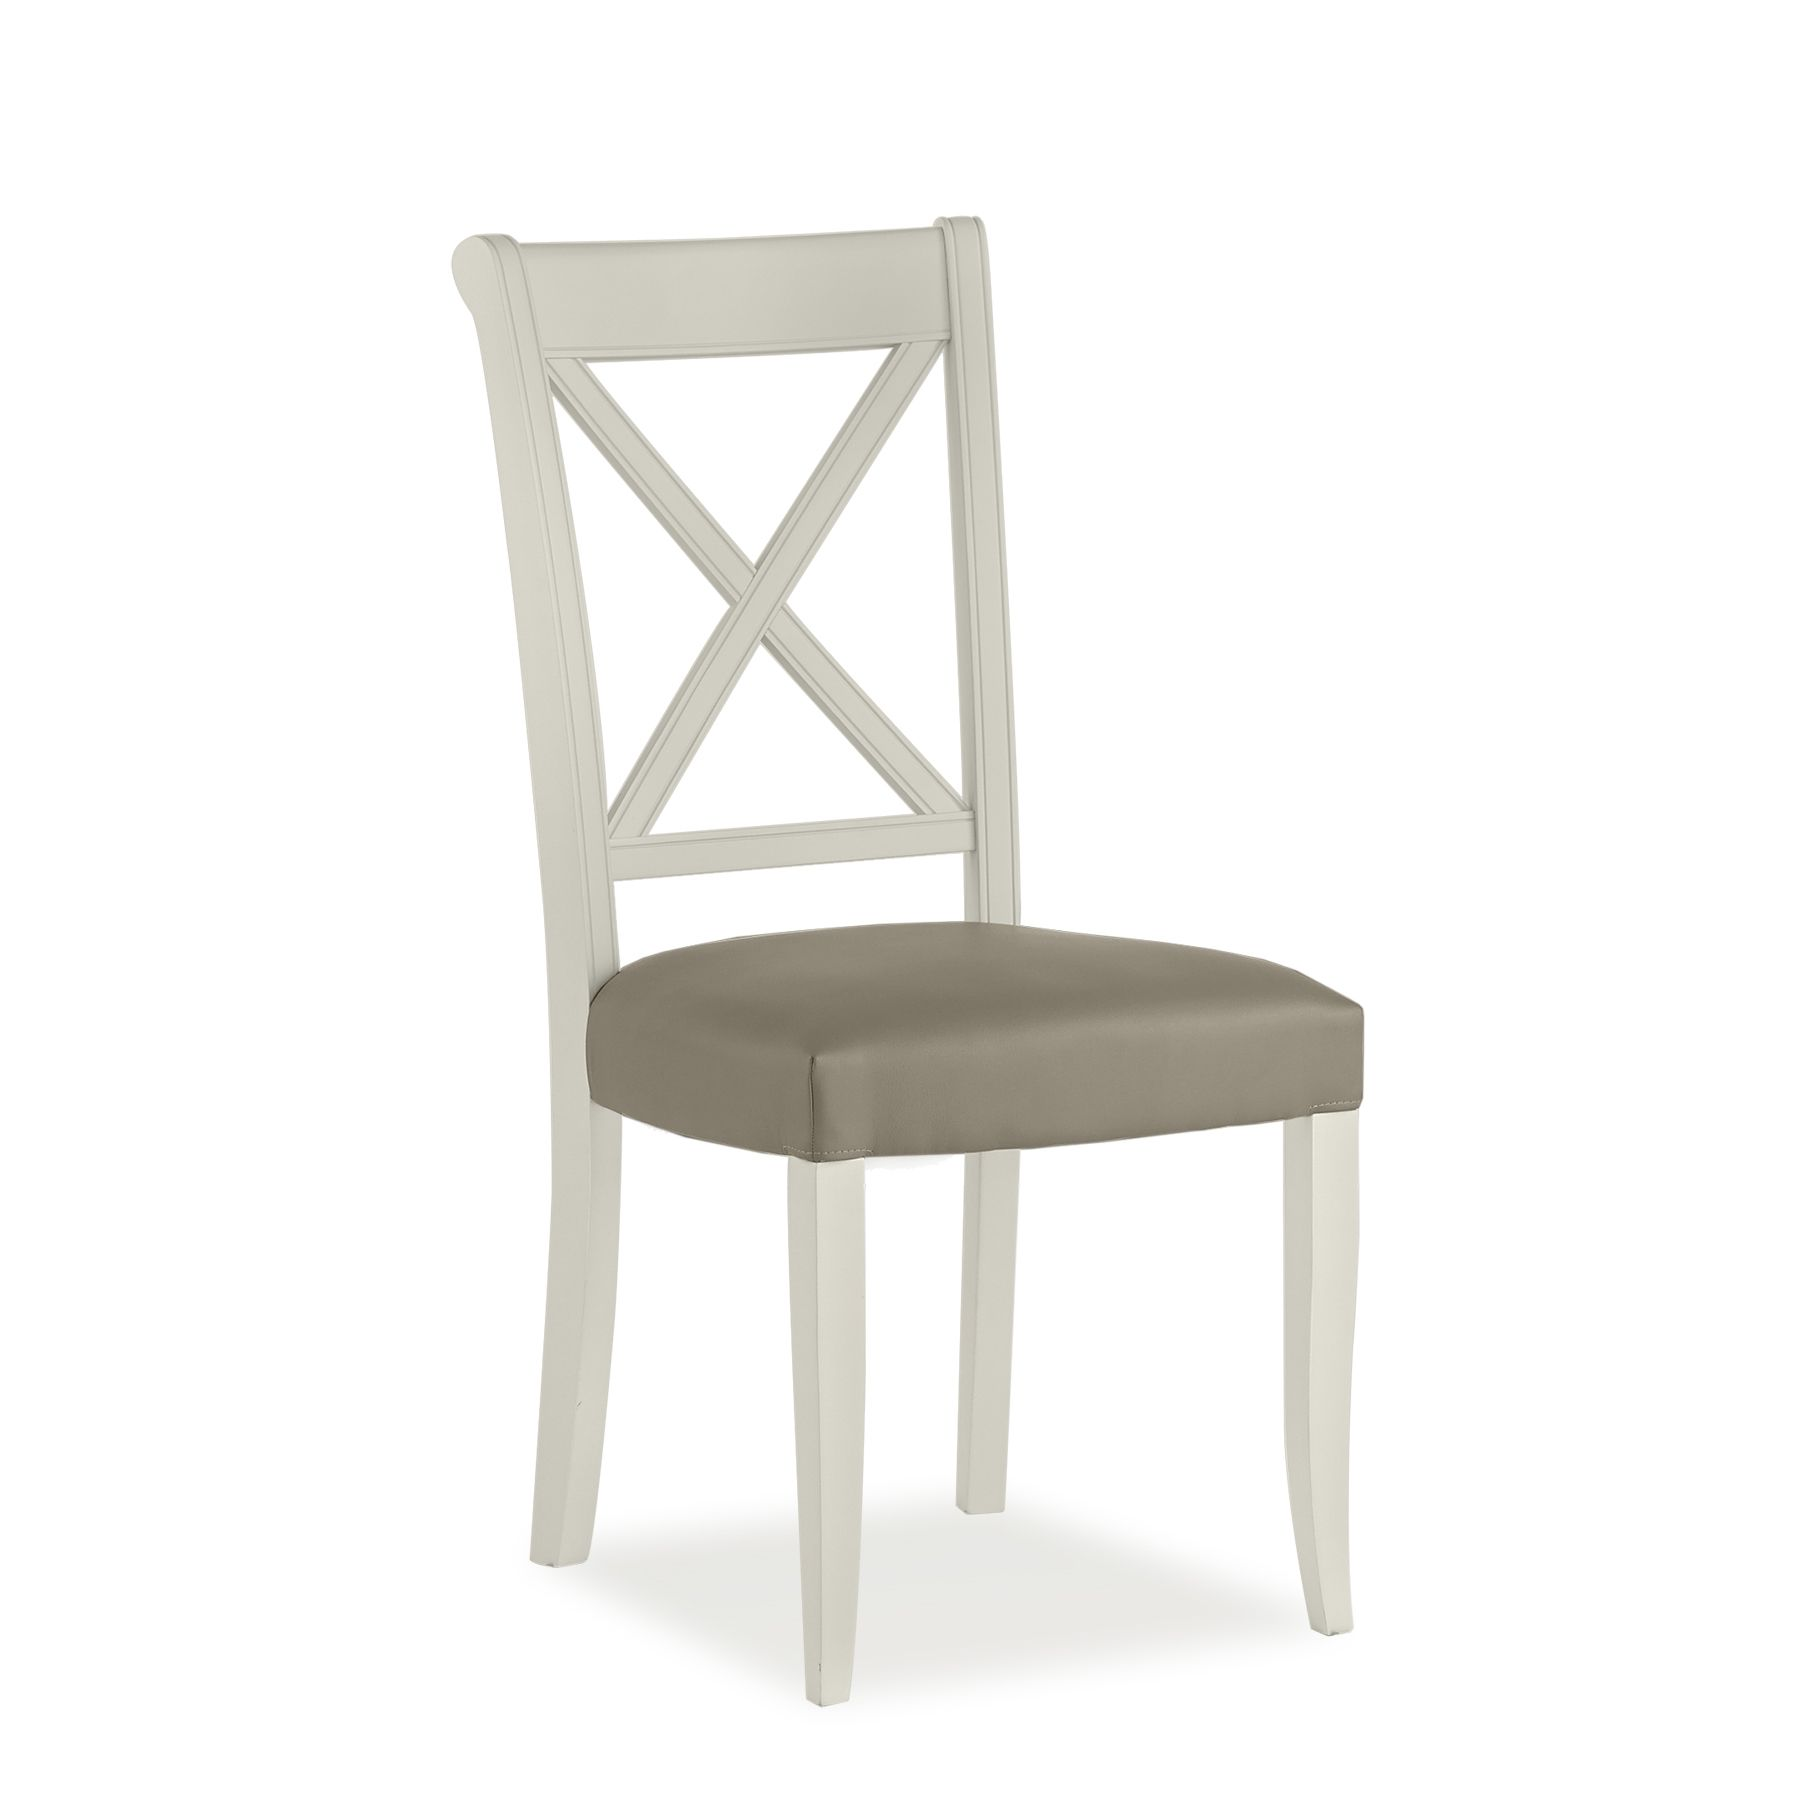 https://www.firstfurniture.co.uk/pub/media/catalog/product/6/5/654_2.jpg